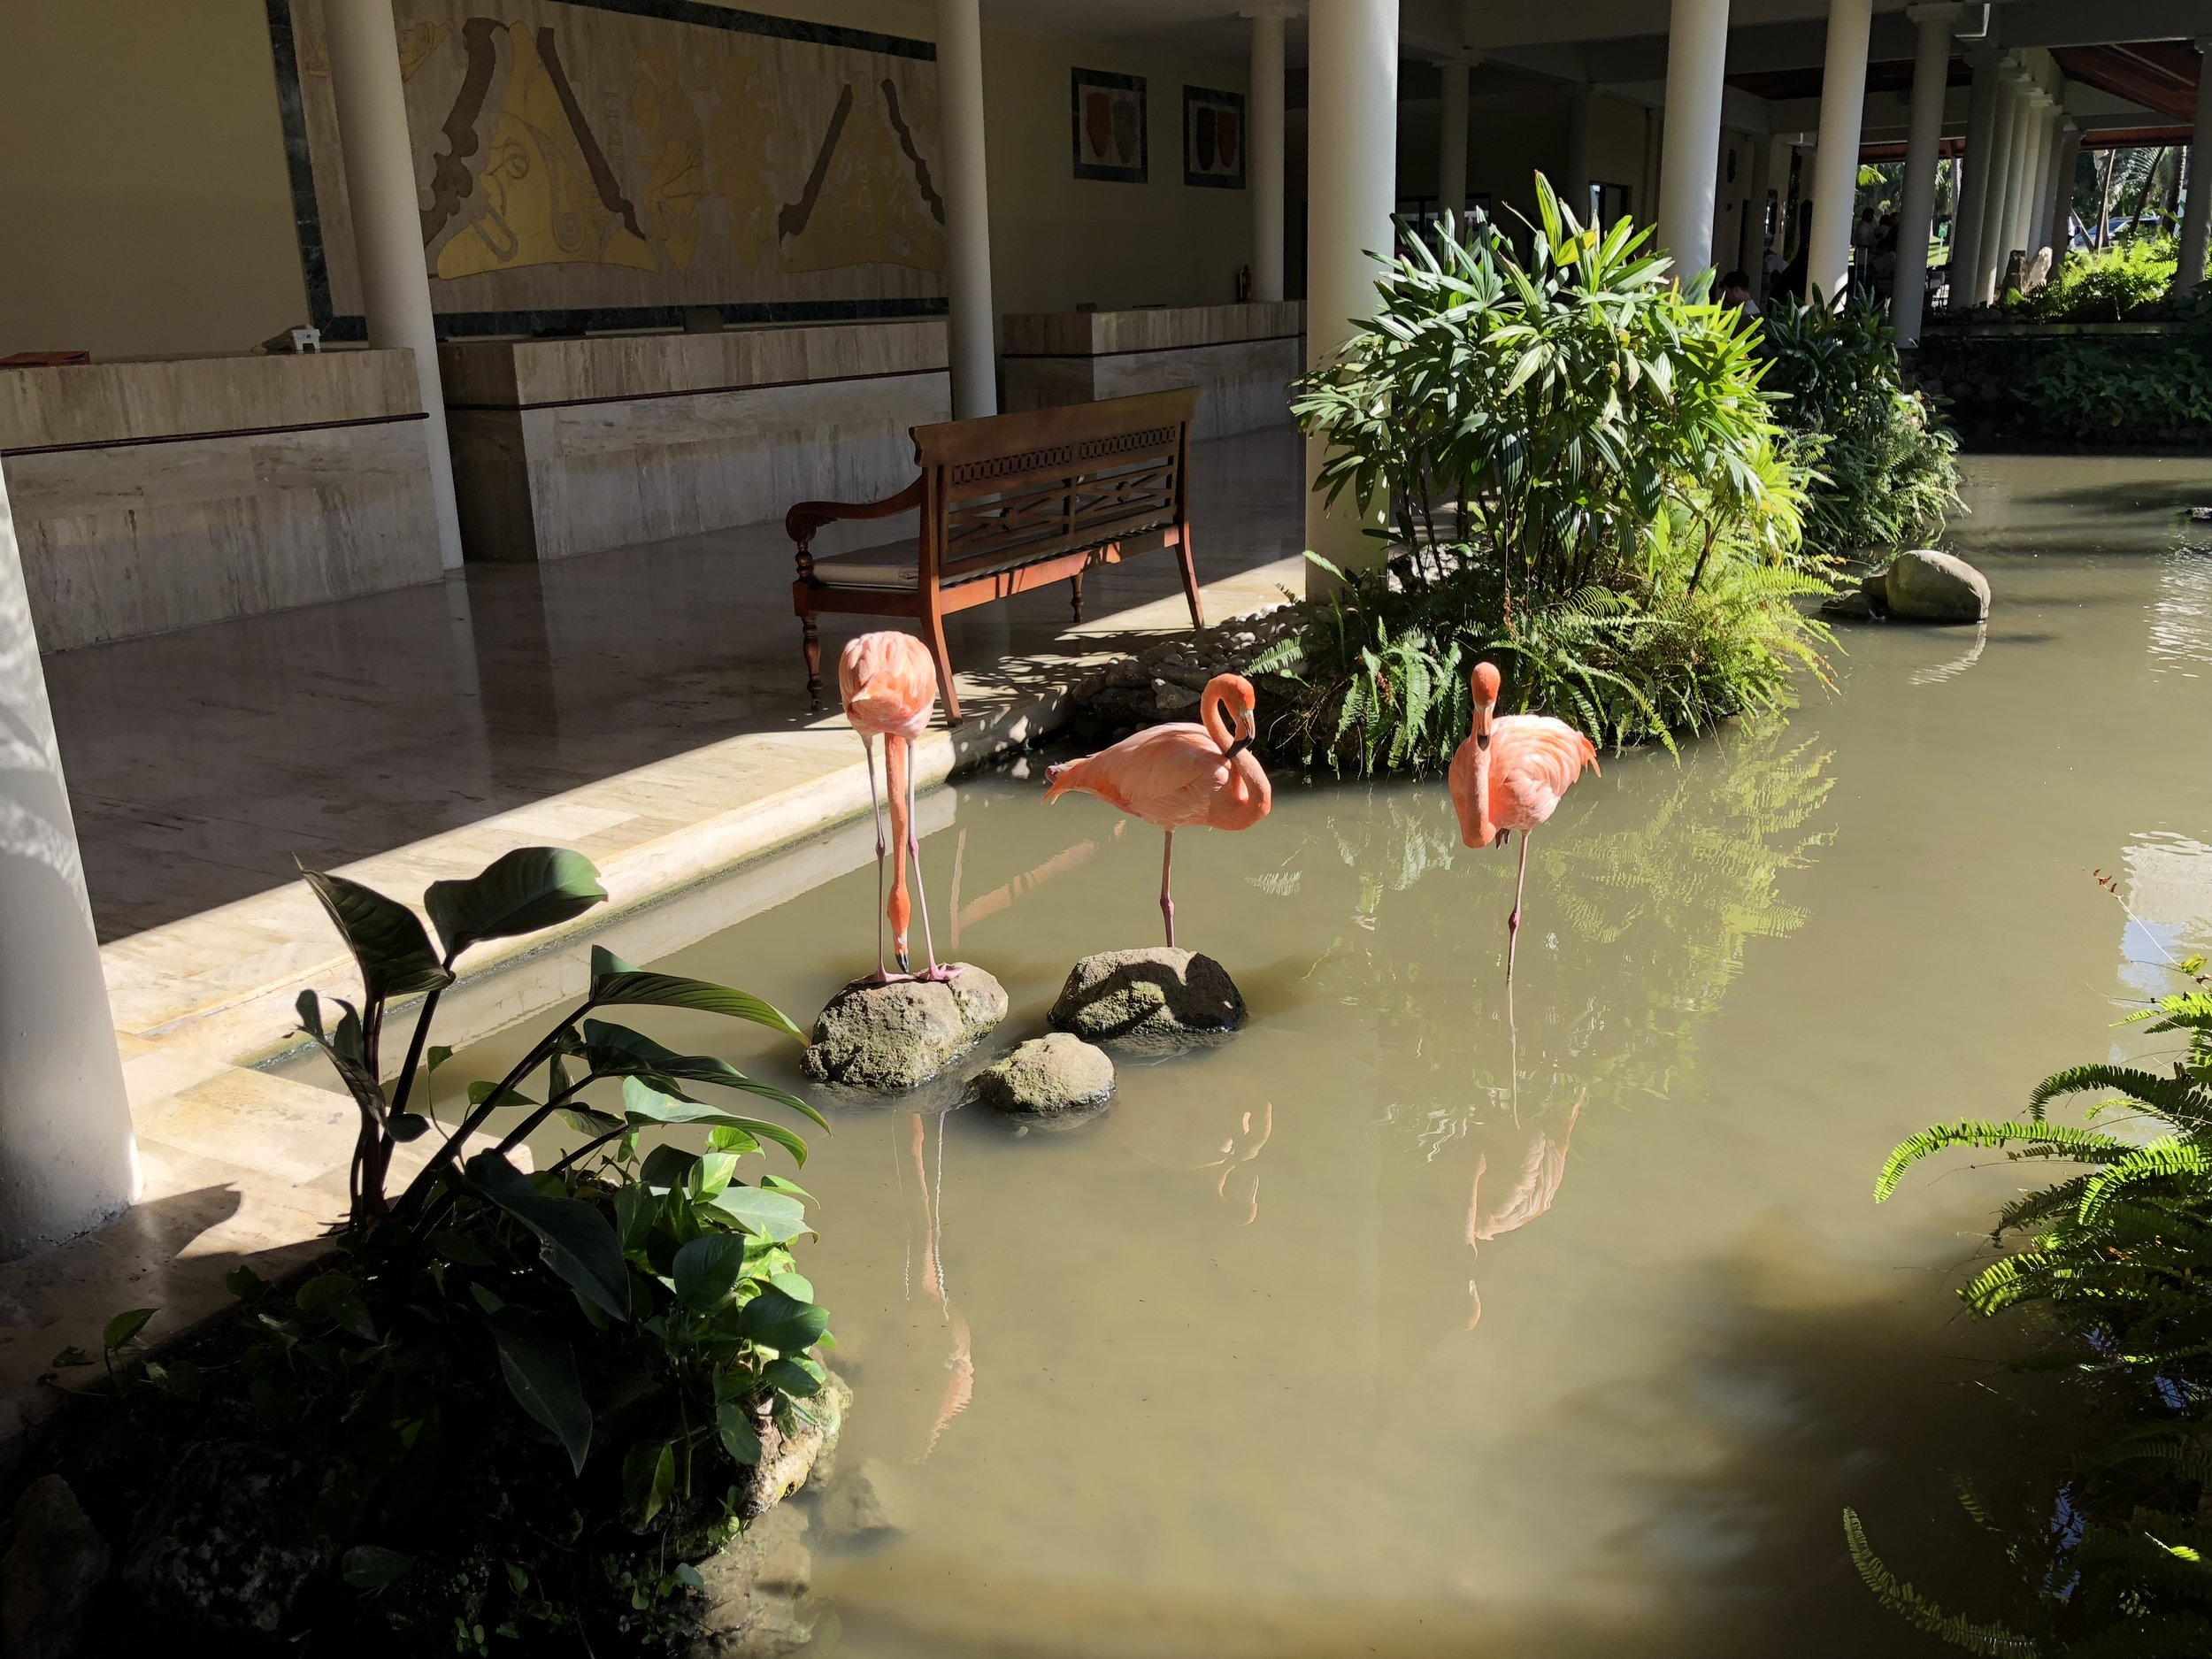 Flamingos are for seeing, not touching. ;)